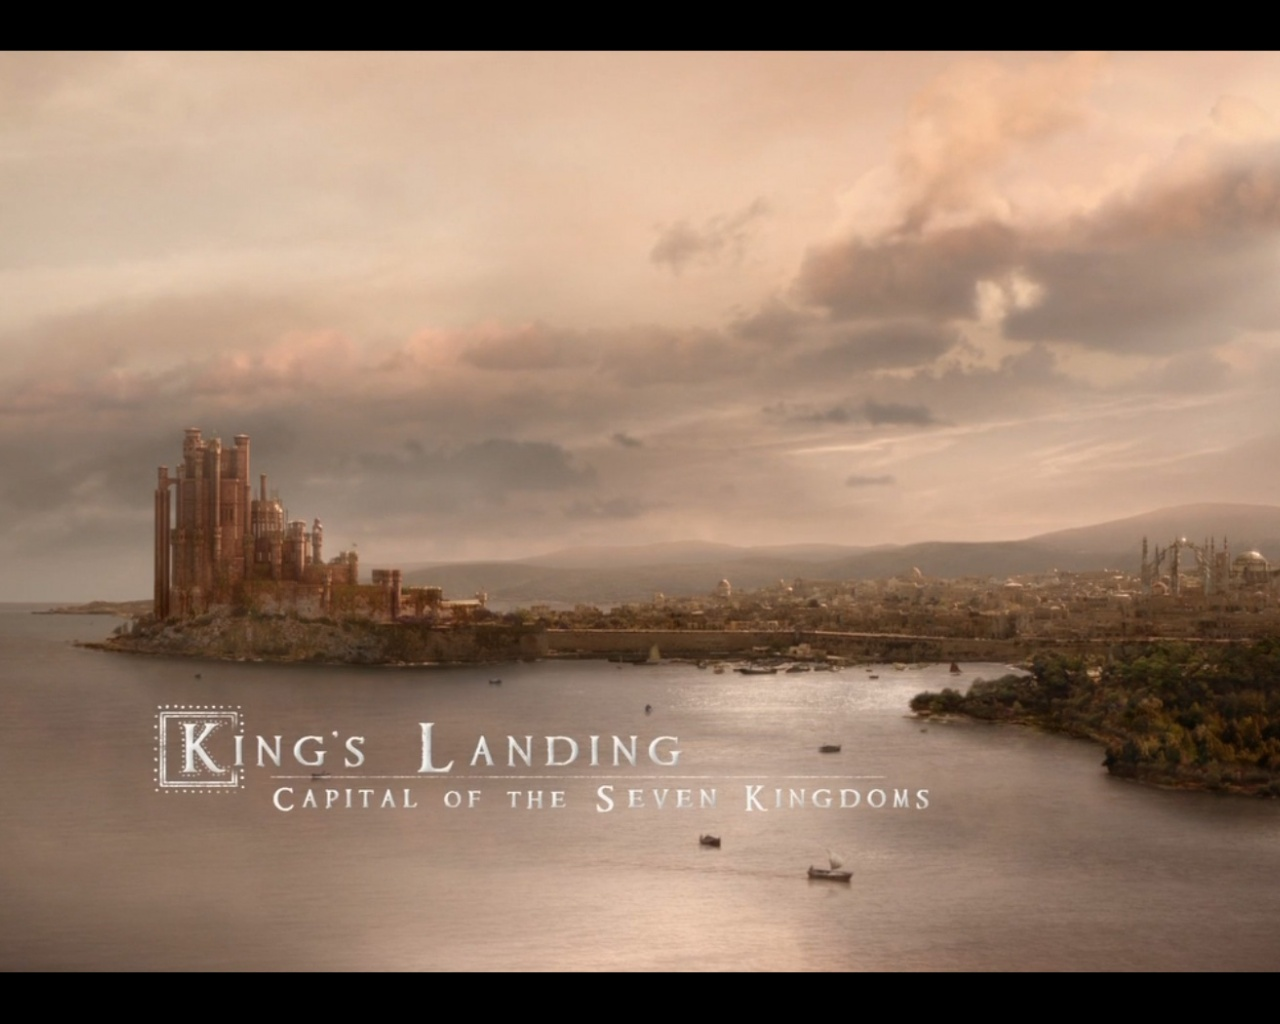 1280x1024 Game of thrones kings landing desktop PC and Mac wallpaper 1280x1024